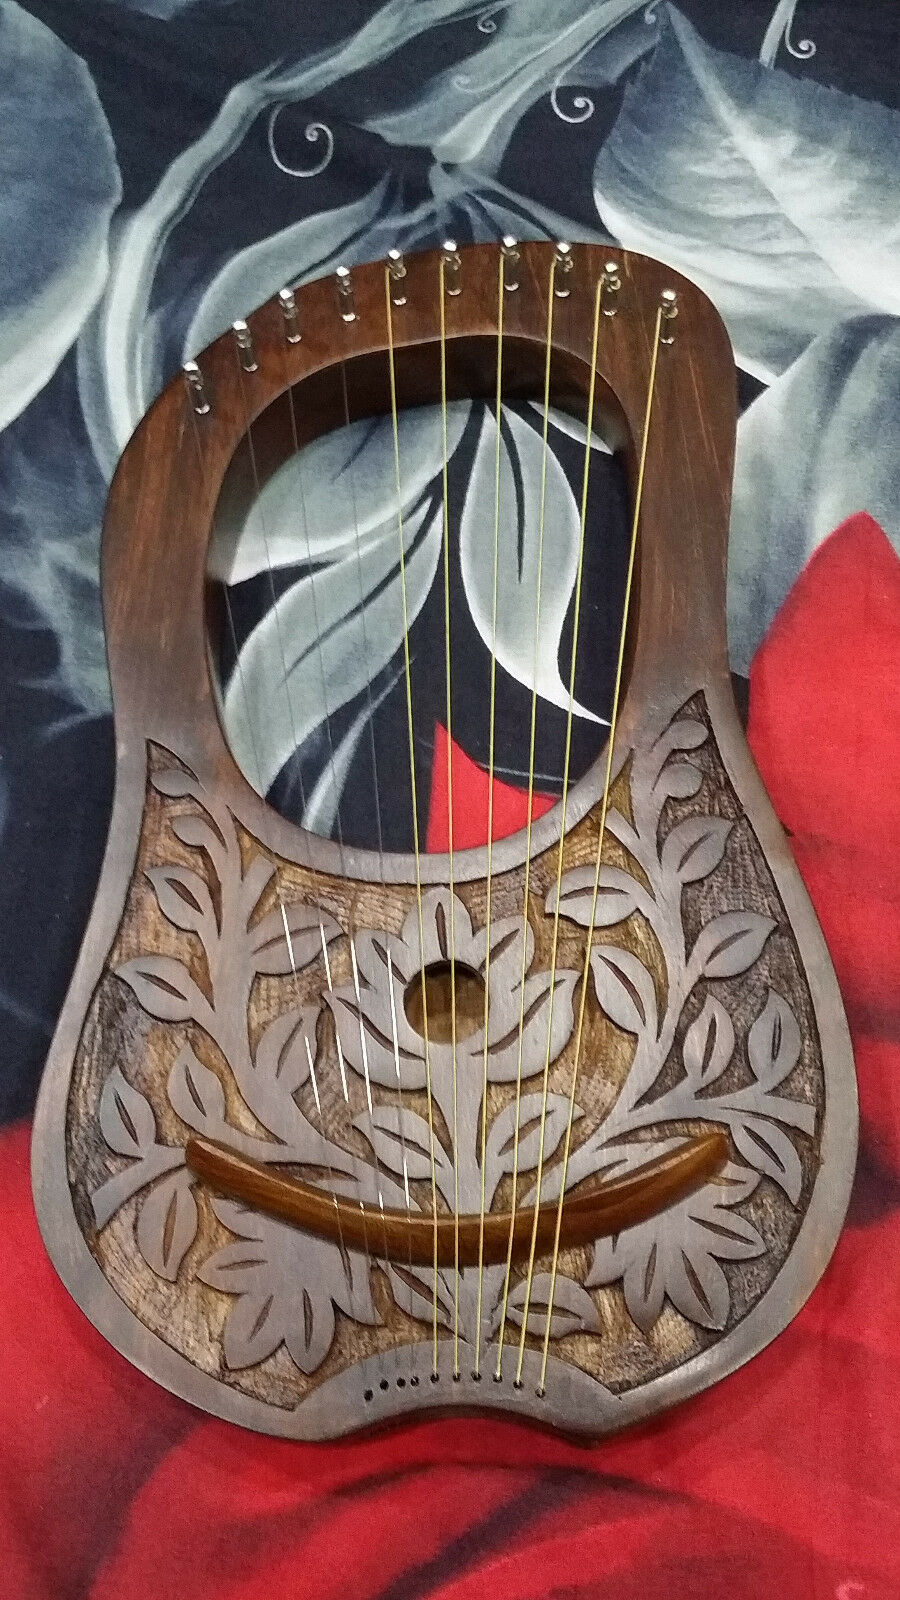 Engraved Lyre Harp pinkwood 10 Metal Strings Free Carrying Case and Key.Harfe